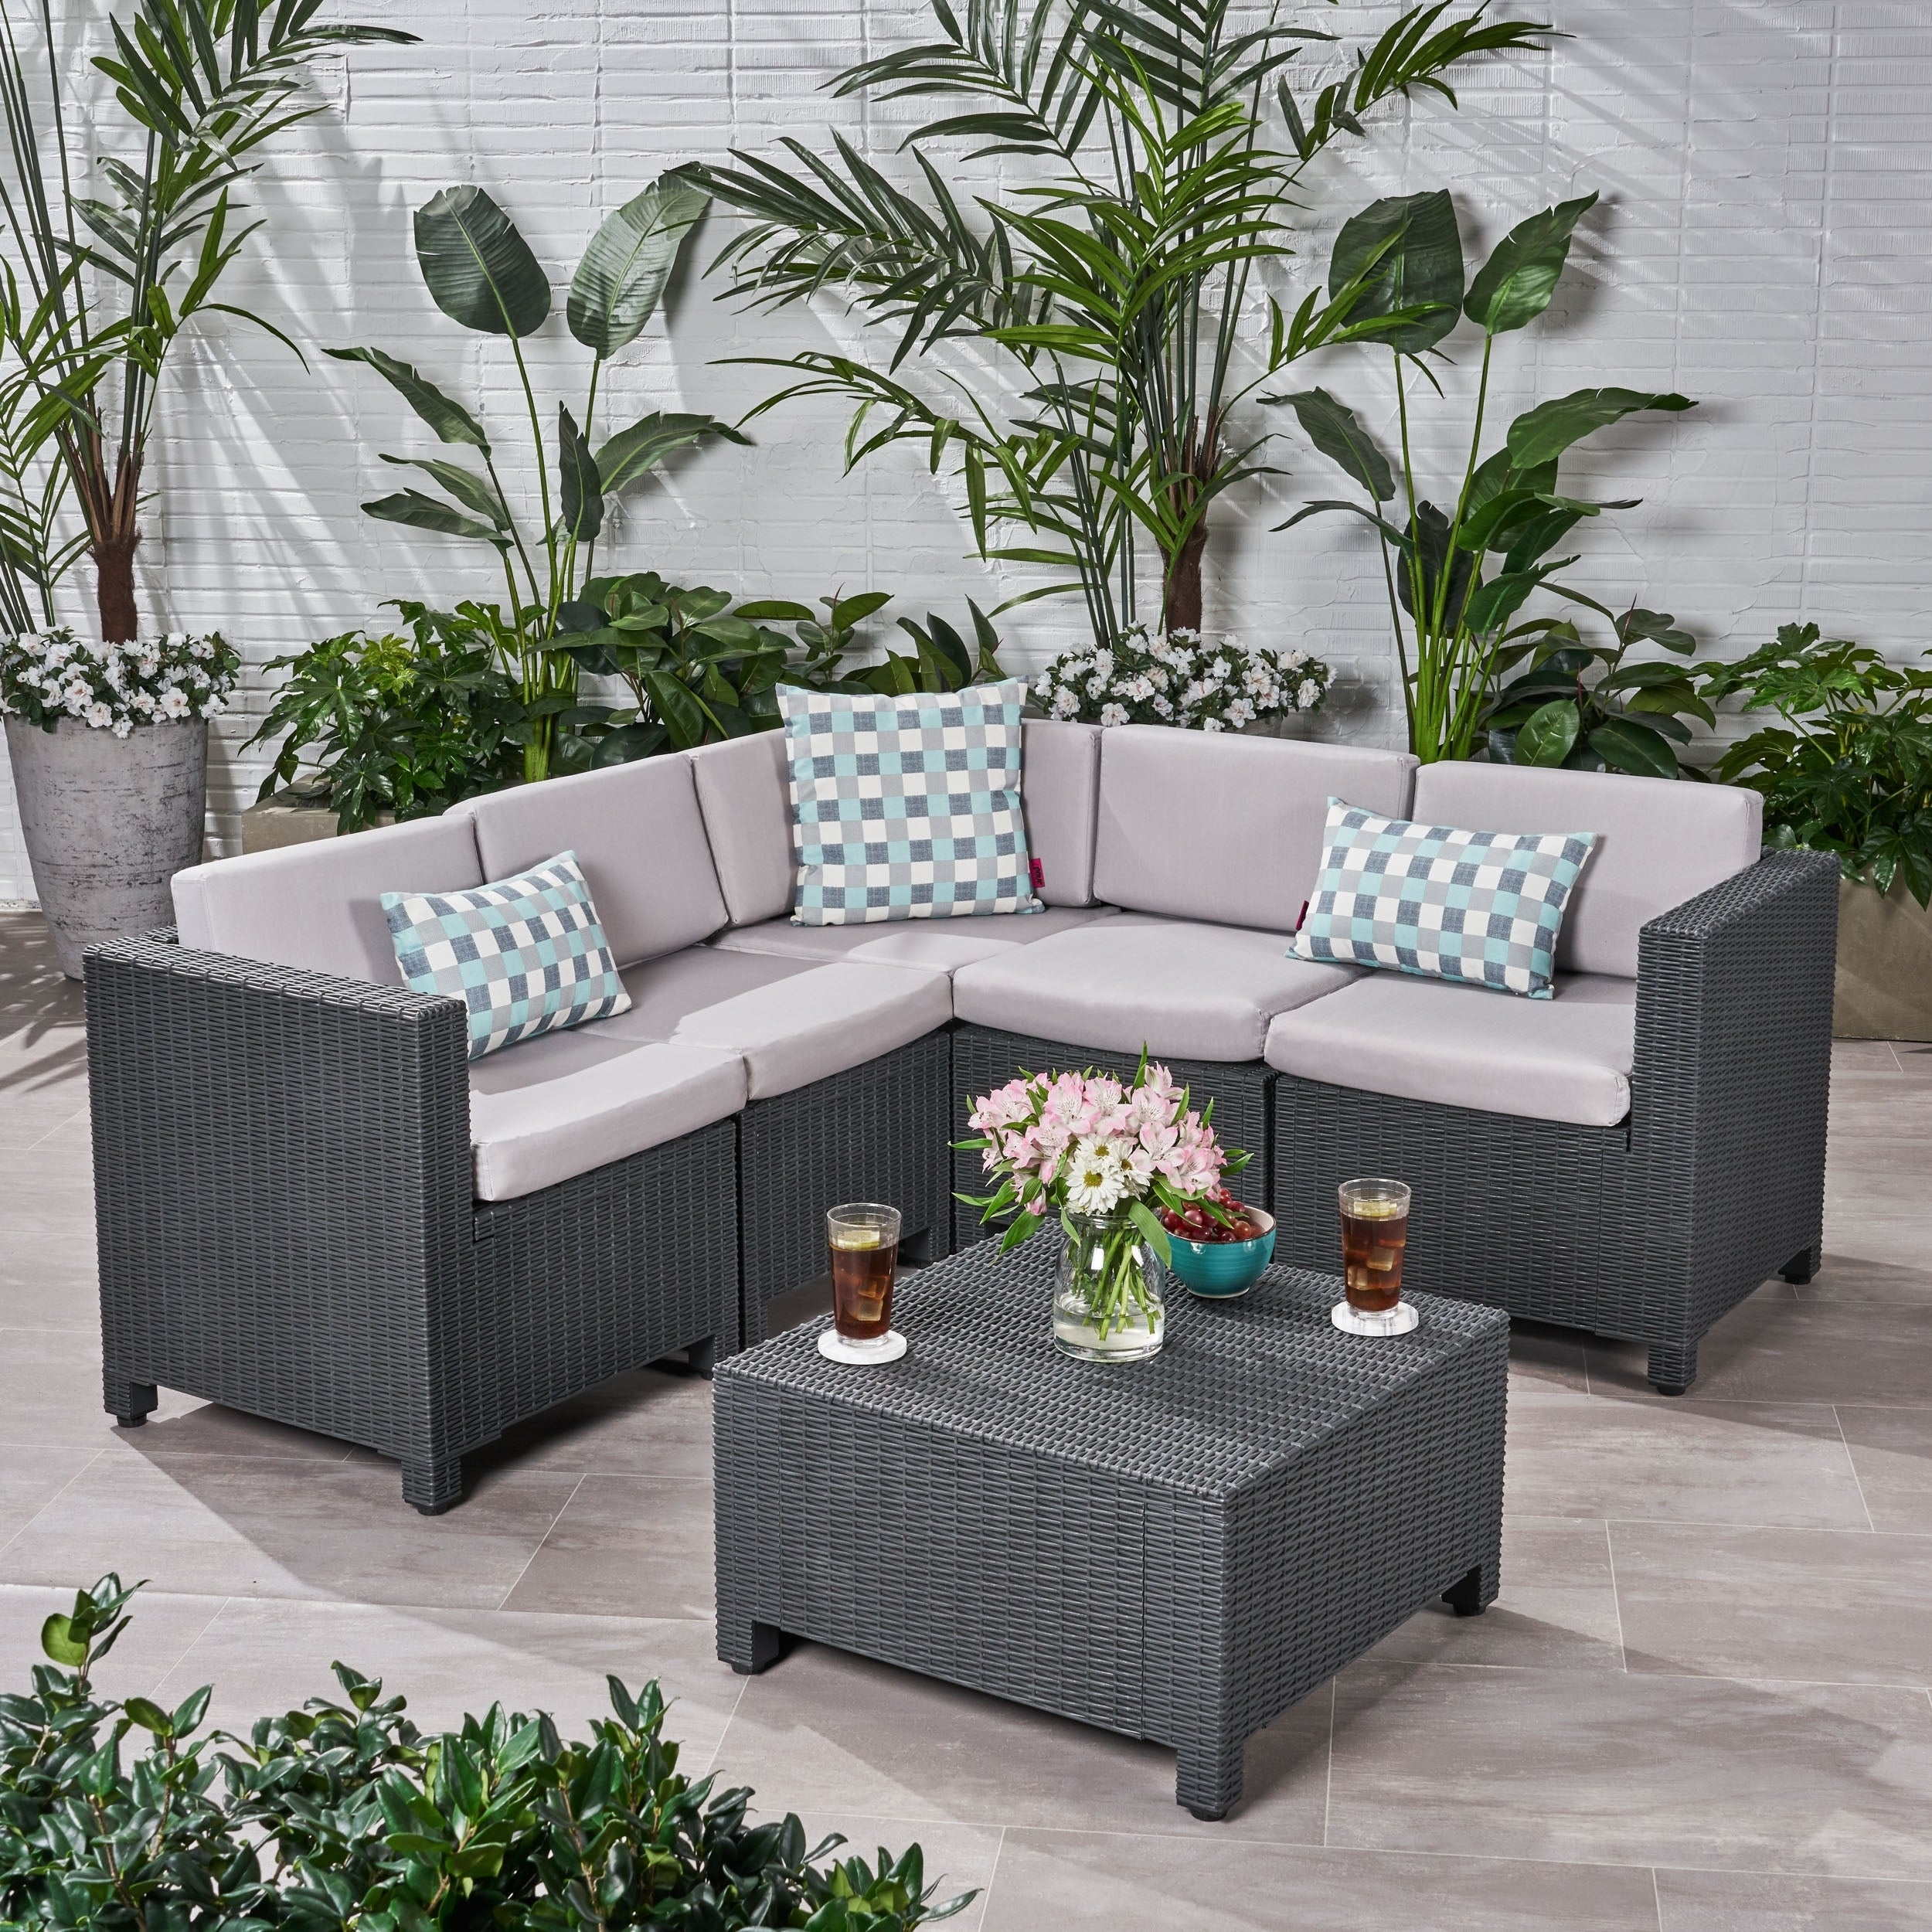 Waverly Outdoor 5 Seater Faux Wicker Sectional Sofa Set With Cushions By Christopher Knight Home